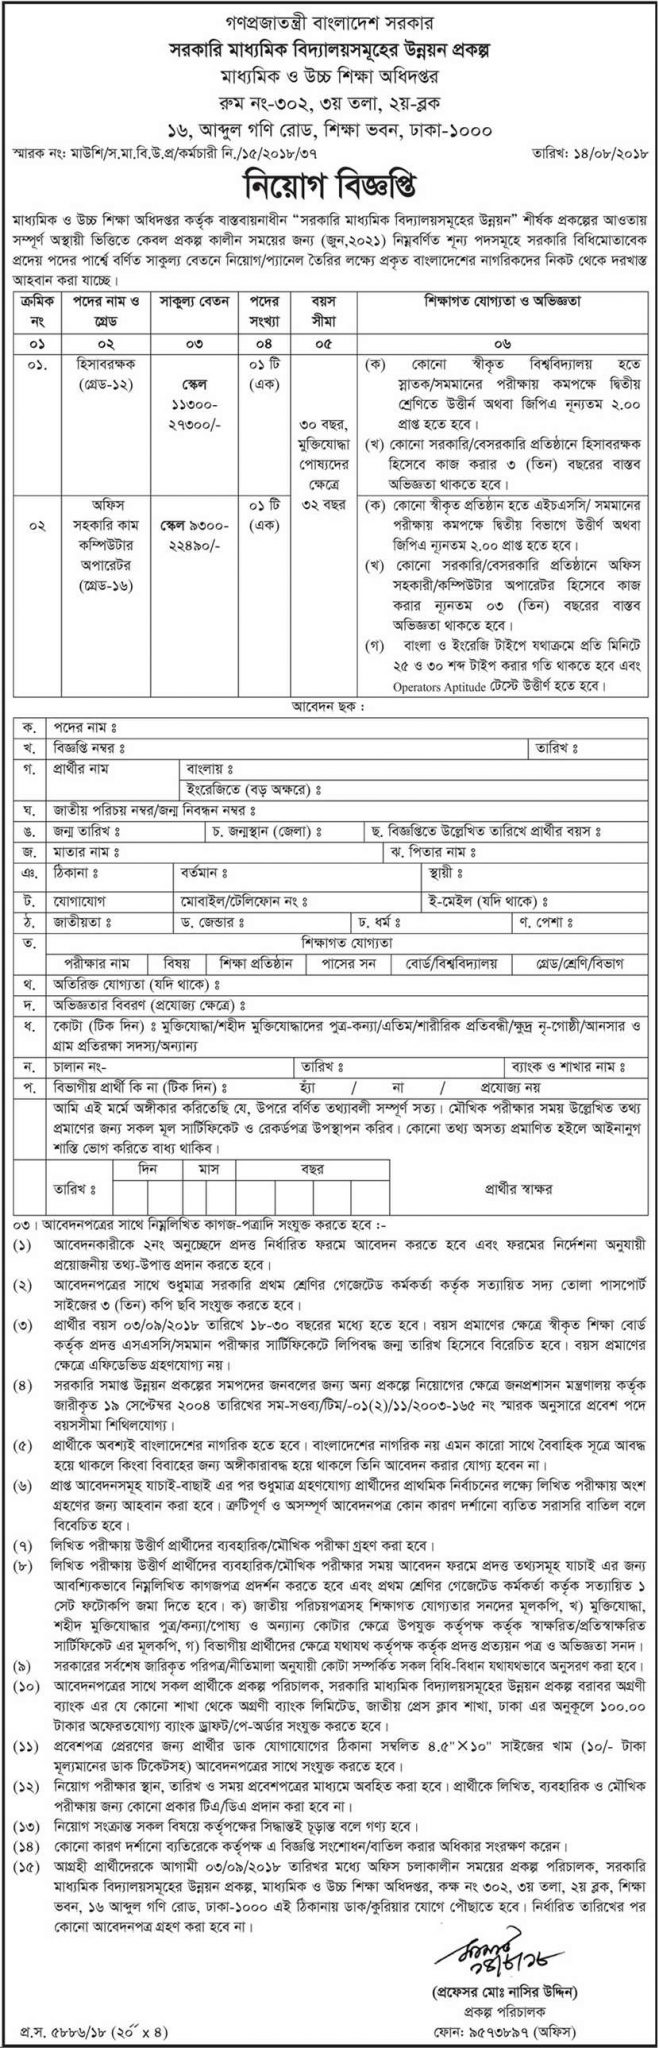 Directorate of Secondary And Higher Education DSHE Job Circular 2018